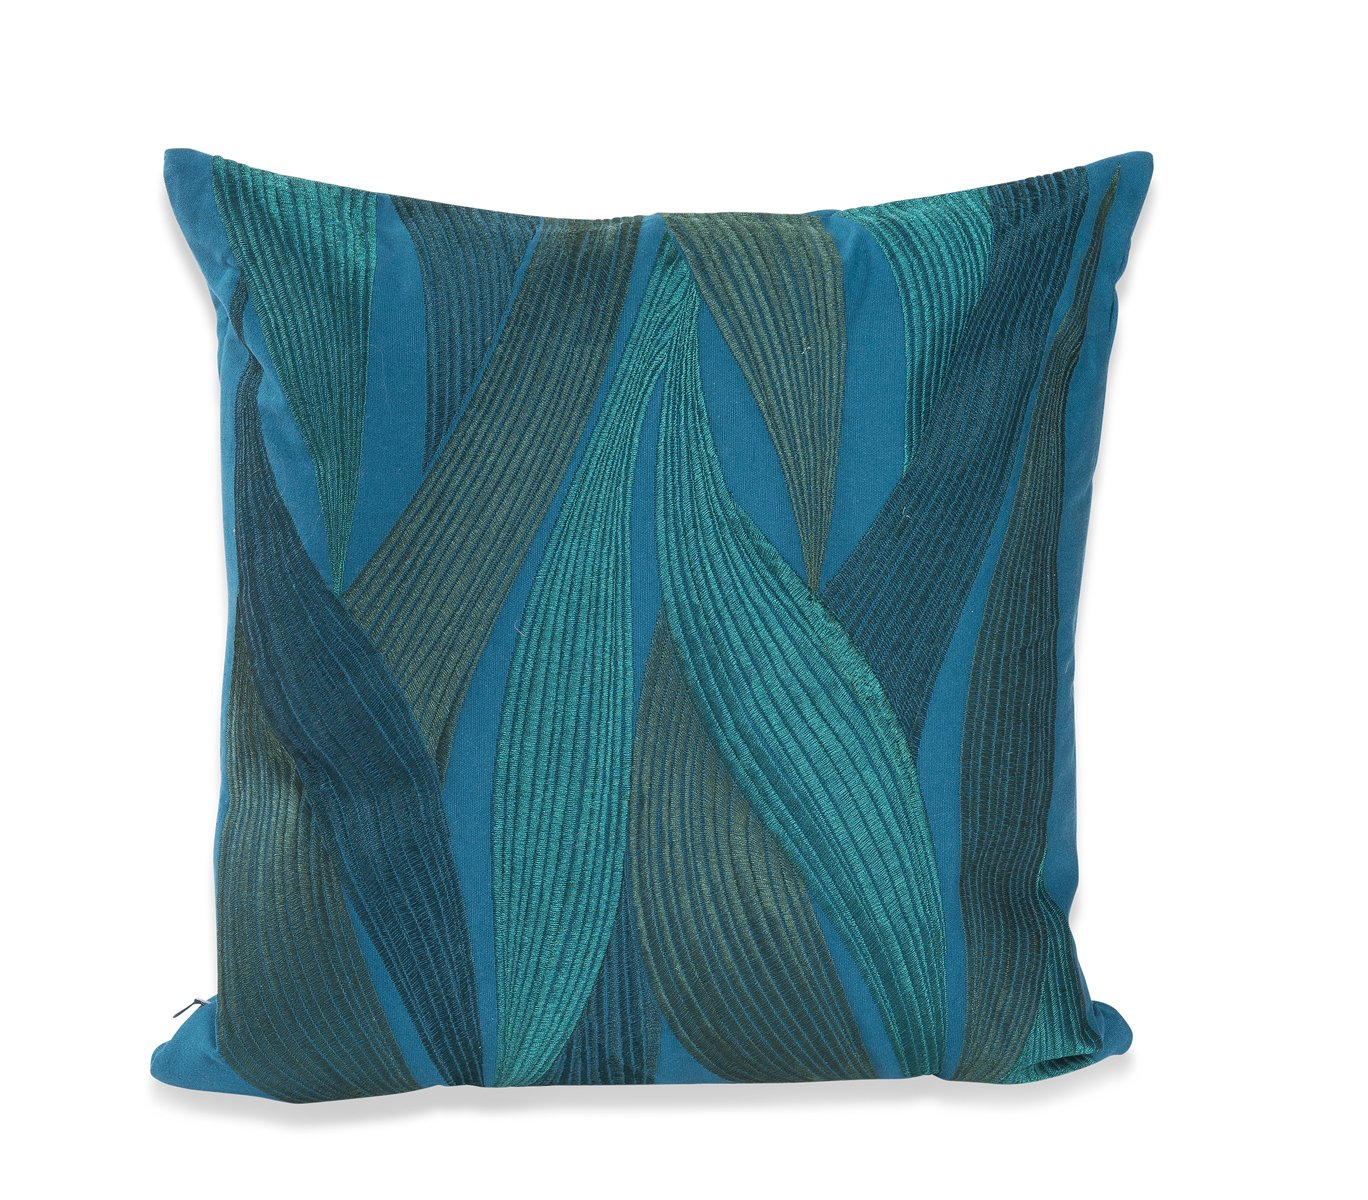 Malini Sorrento Cushion Blue 43 x 43cm: Amazon.co.uk: Kitchen & Home